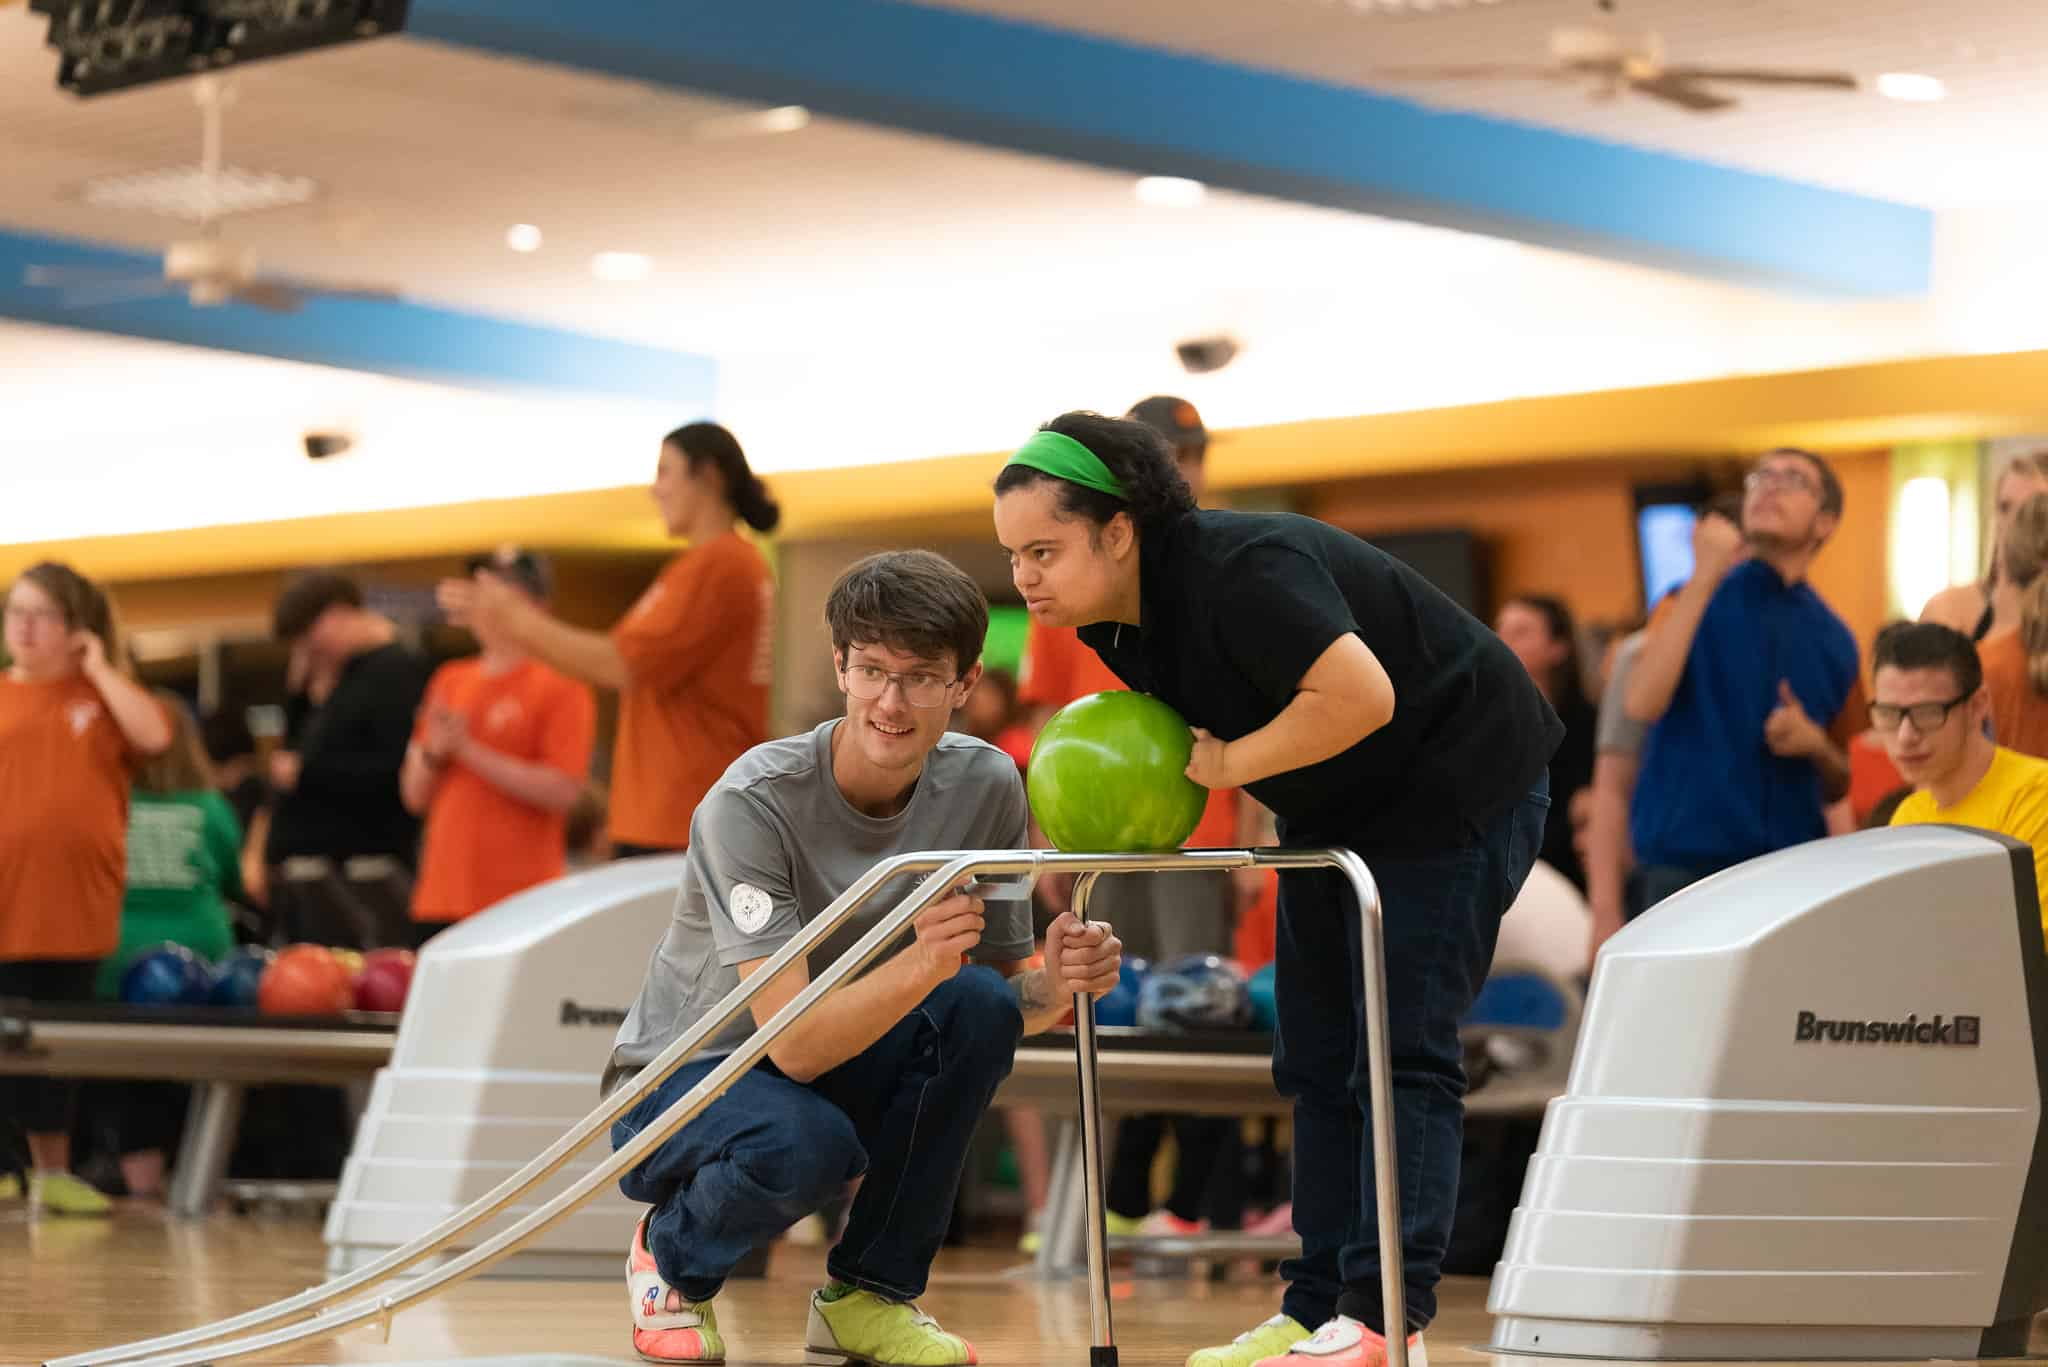 A student athlete and partner using a bowling ramp